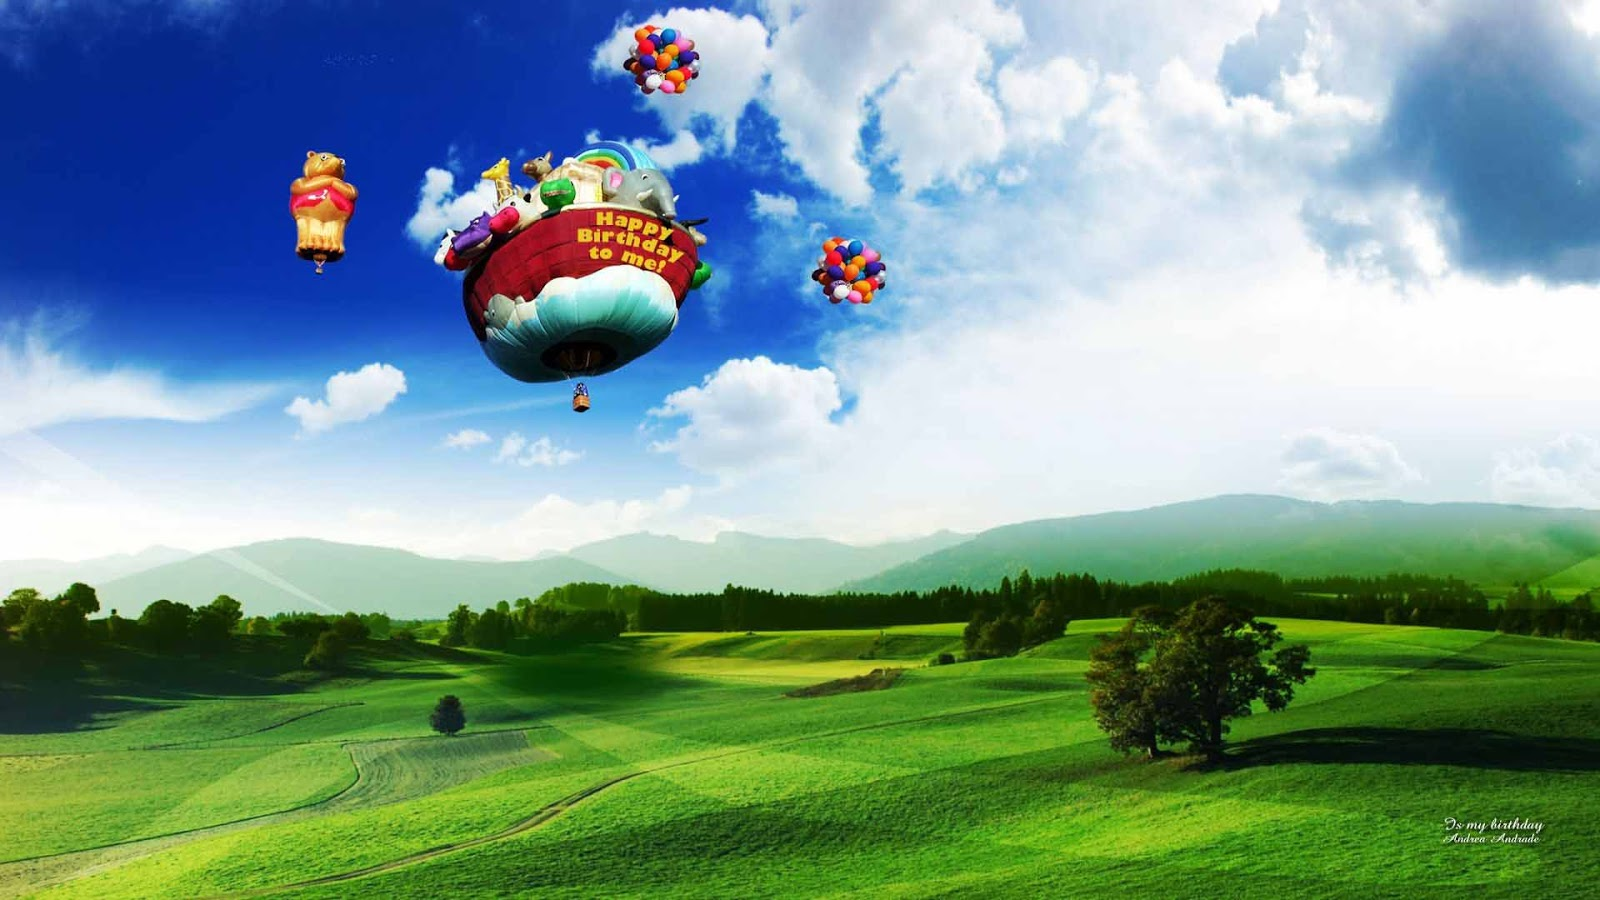 Hd wallpapers 3d nature wallpapers for 3d wallpaper for pc